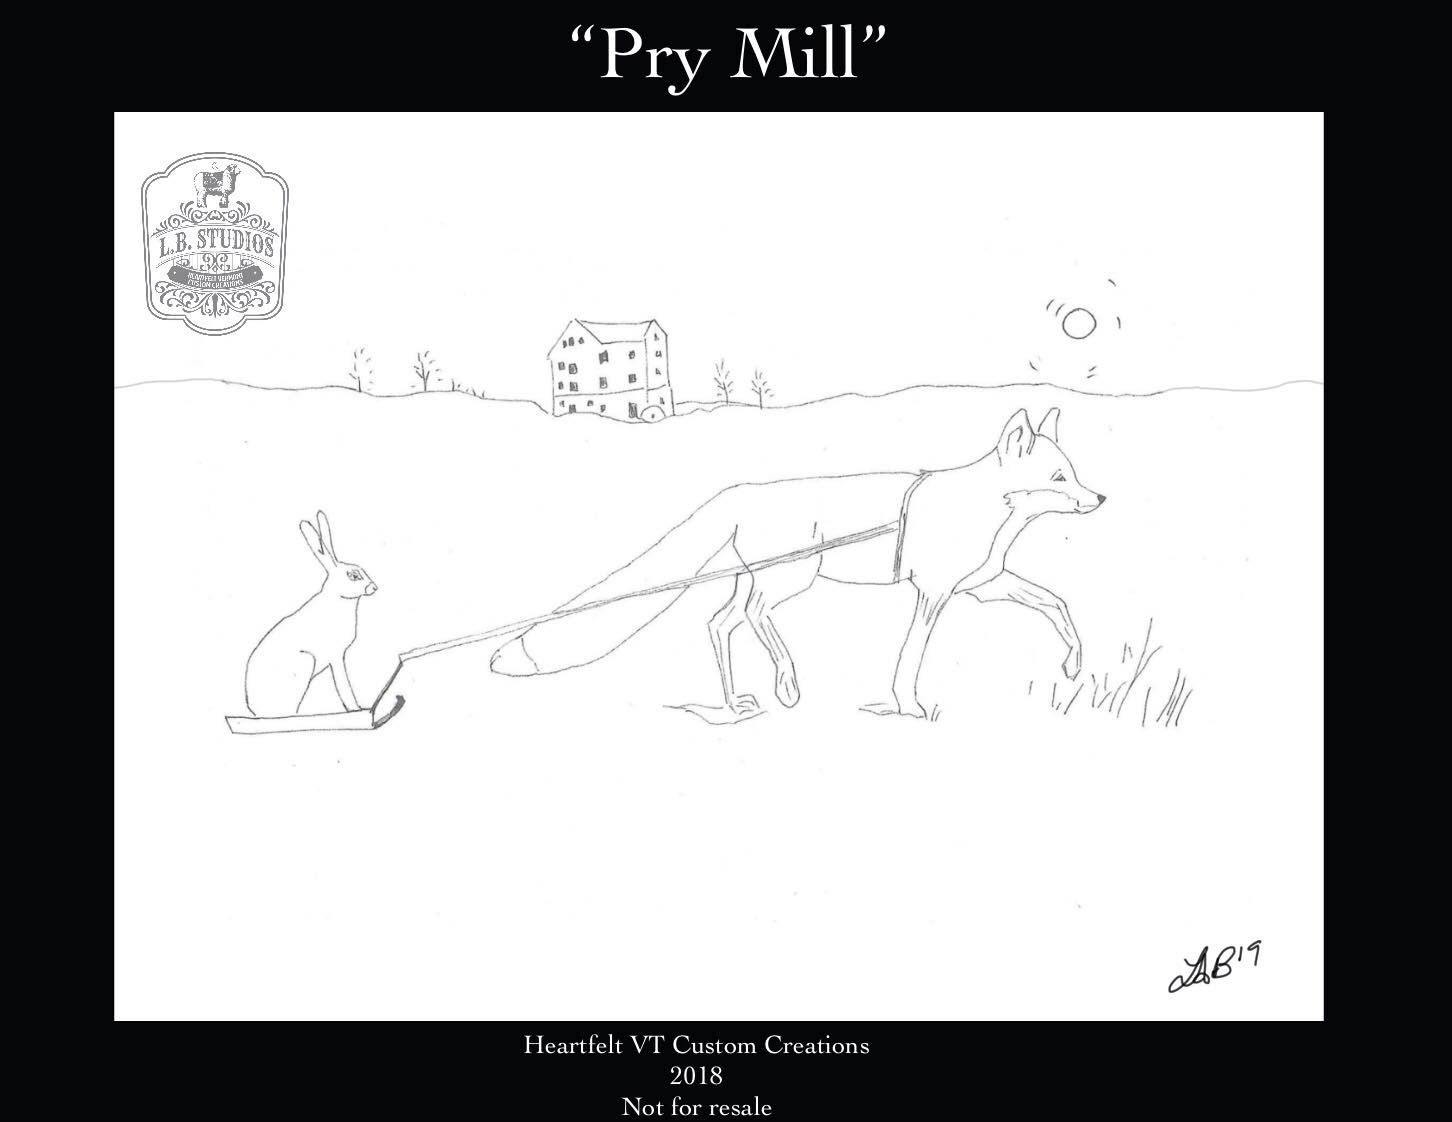 Pry Mill